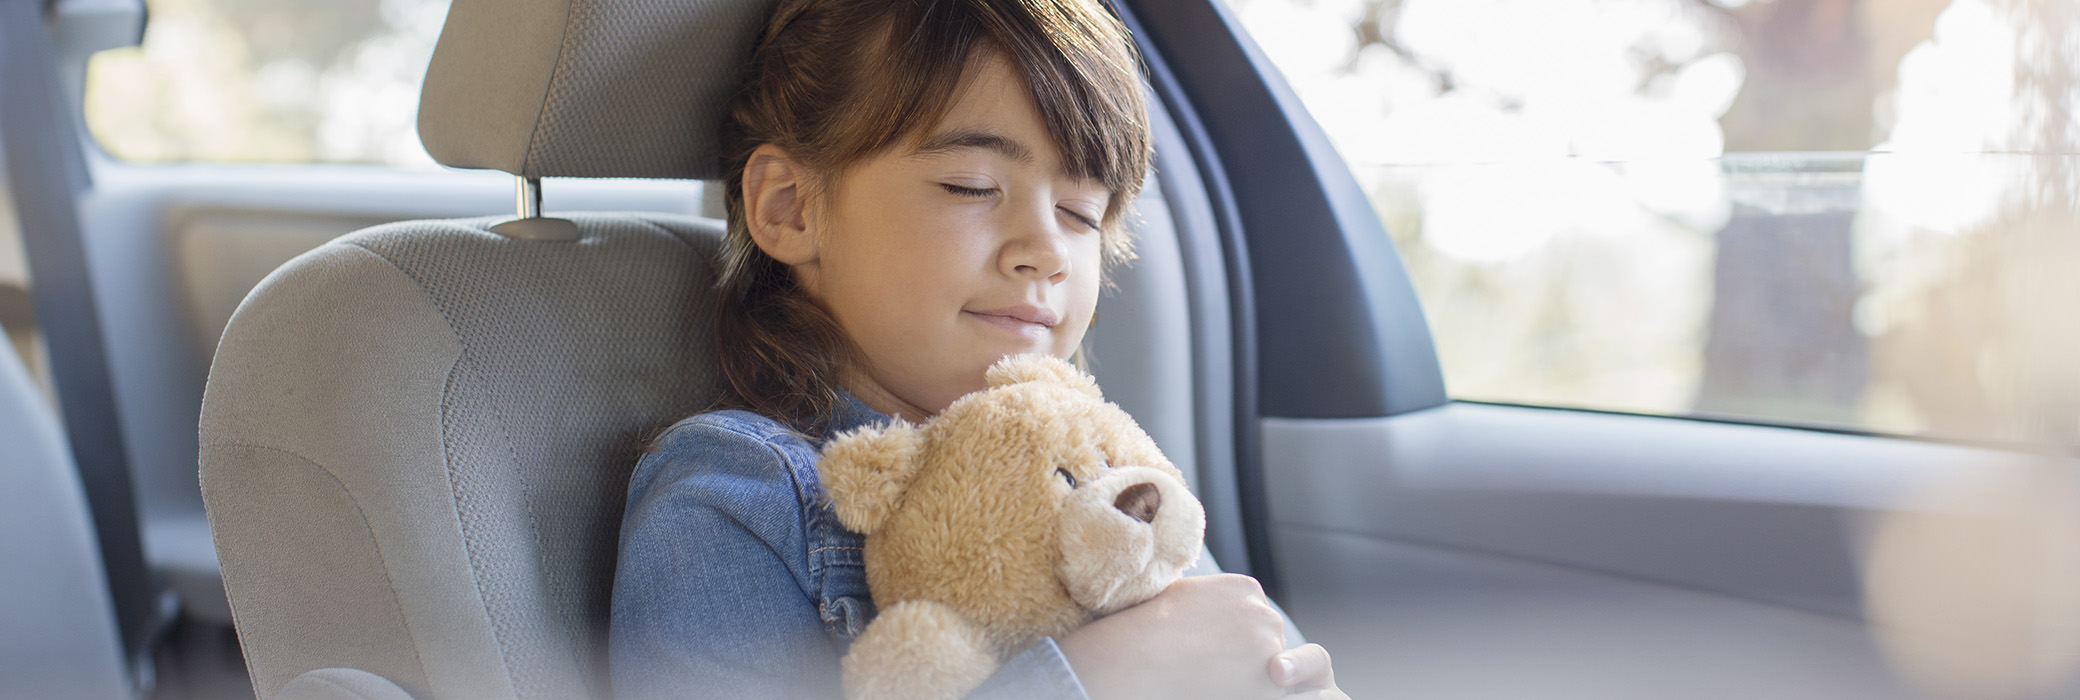 A little girl smiling and sitting in a car hugging her teddy bear with her eyes closed